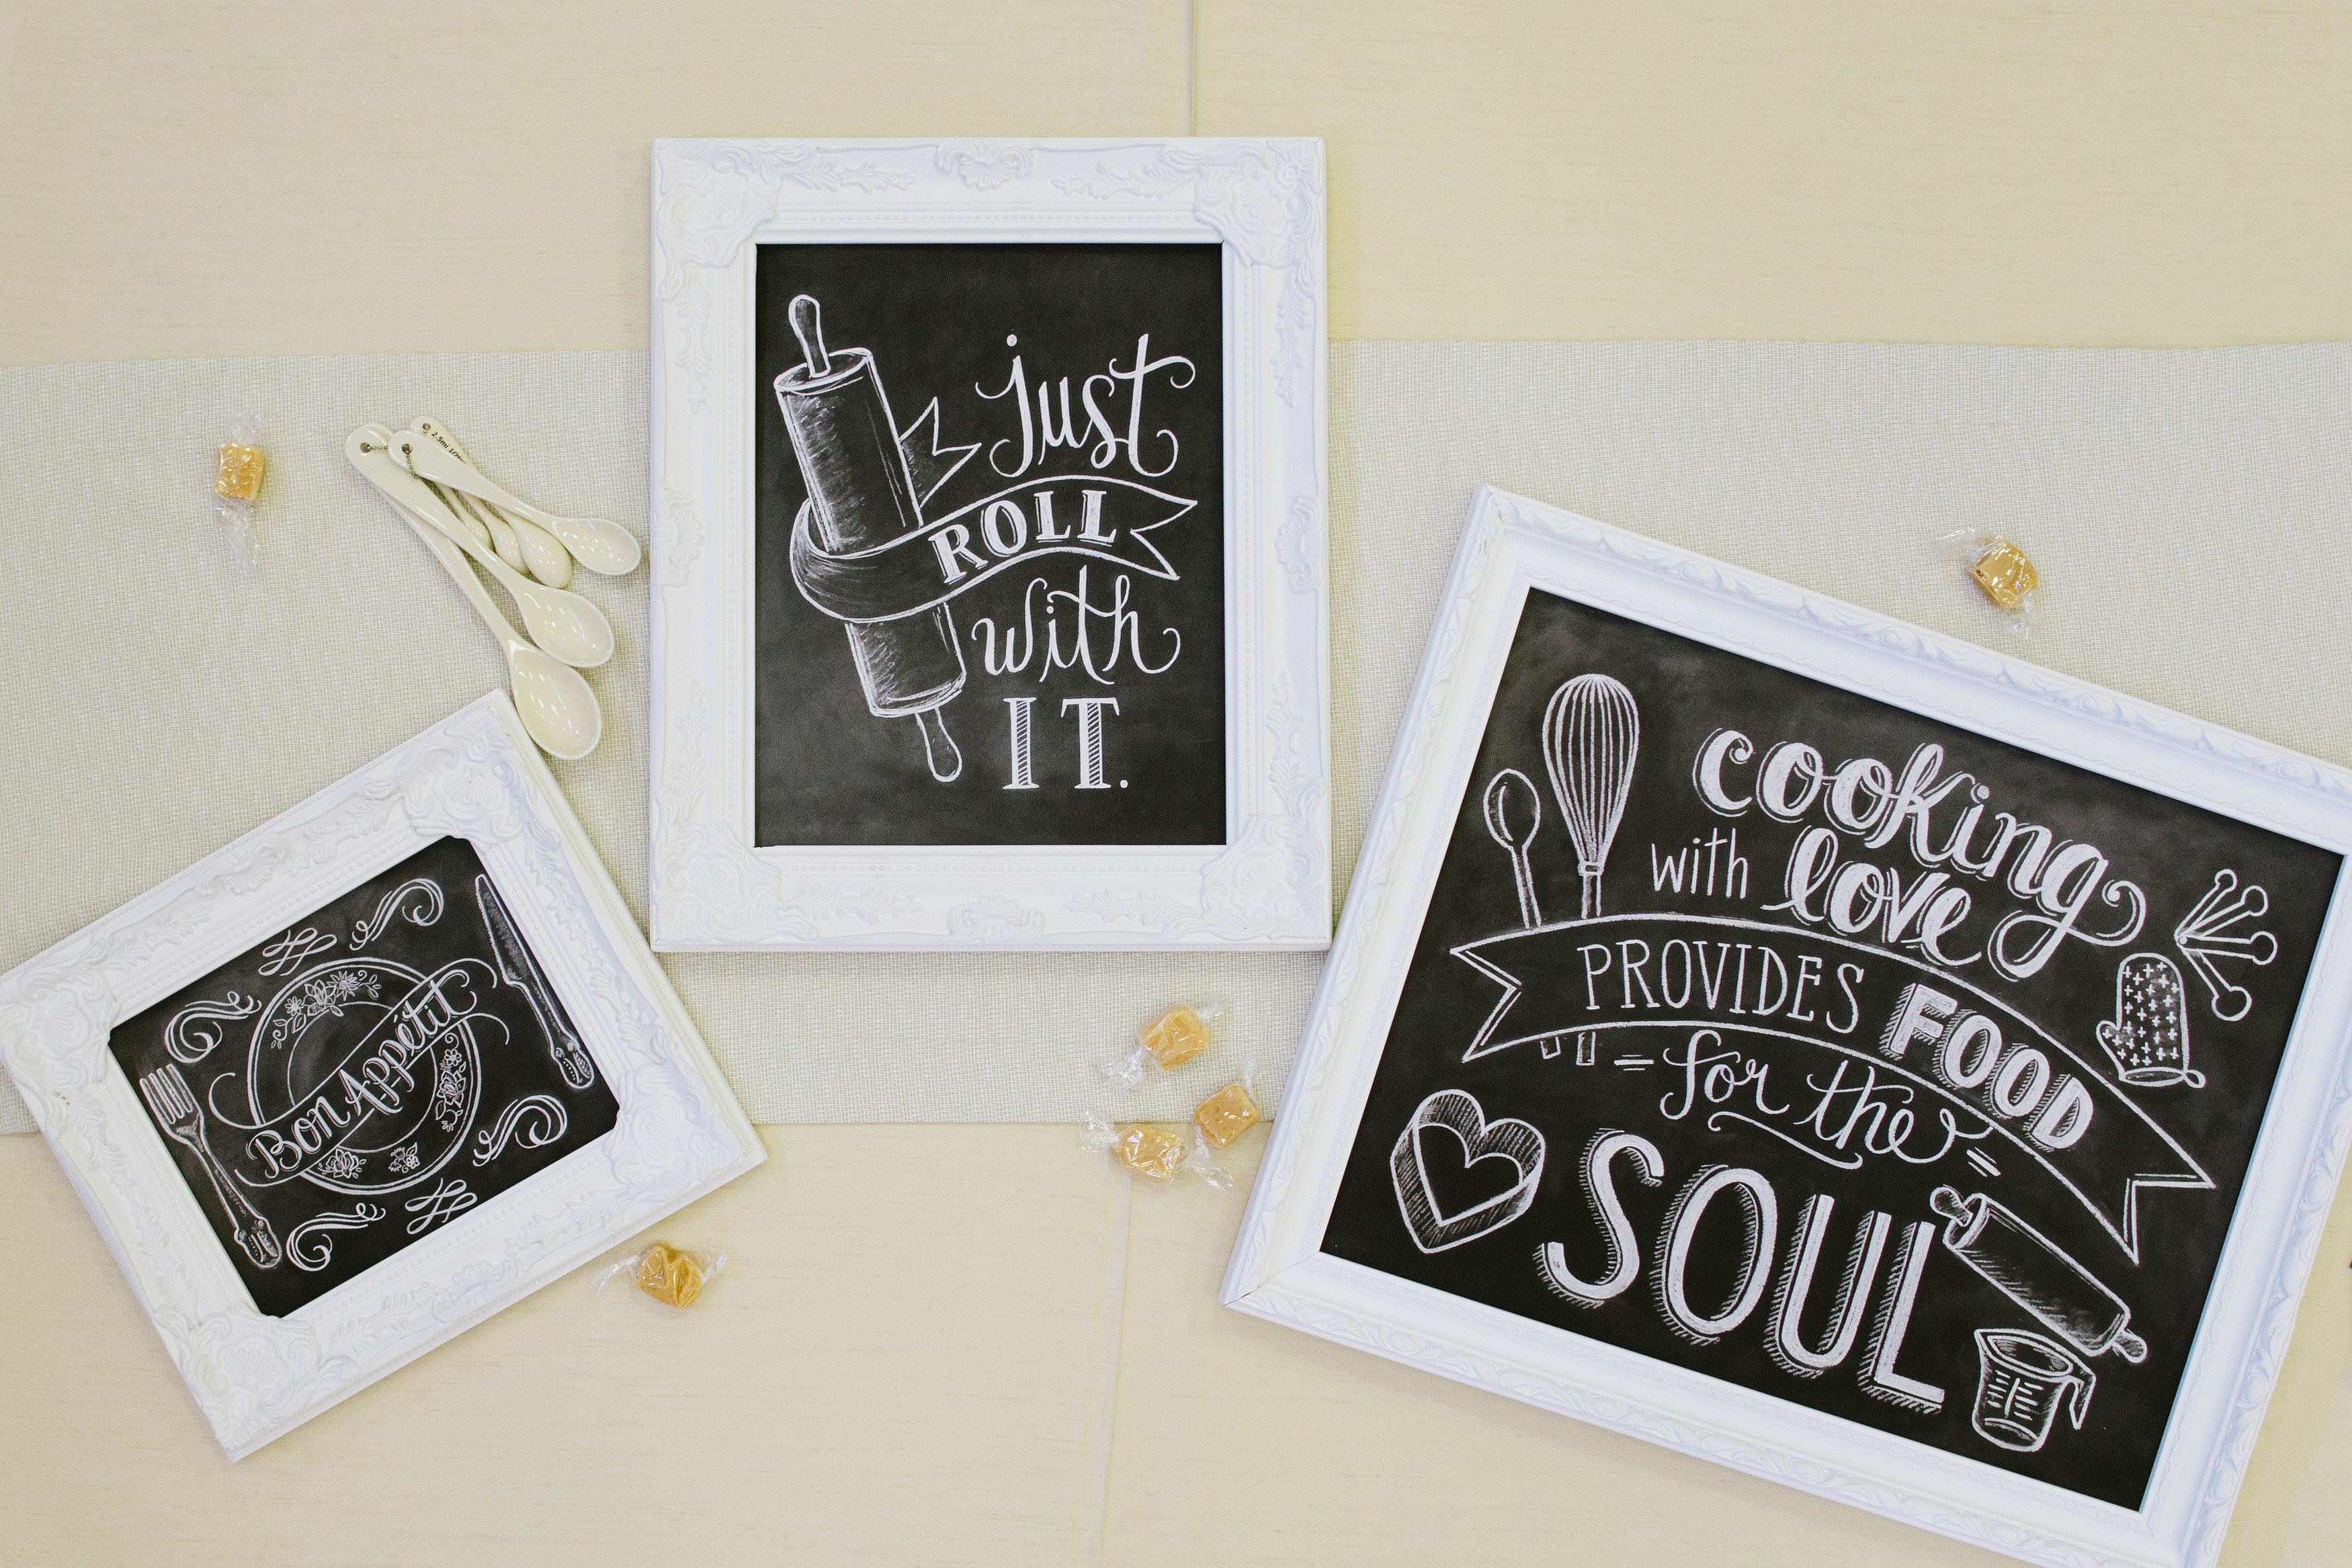 Cooking prints by Lily & Val. Cooking with love provides food for the soul.